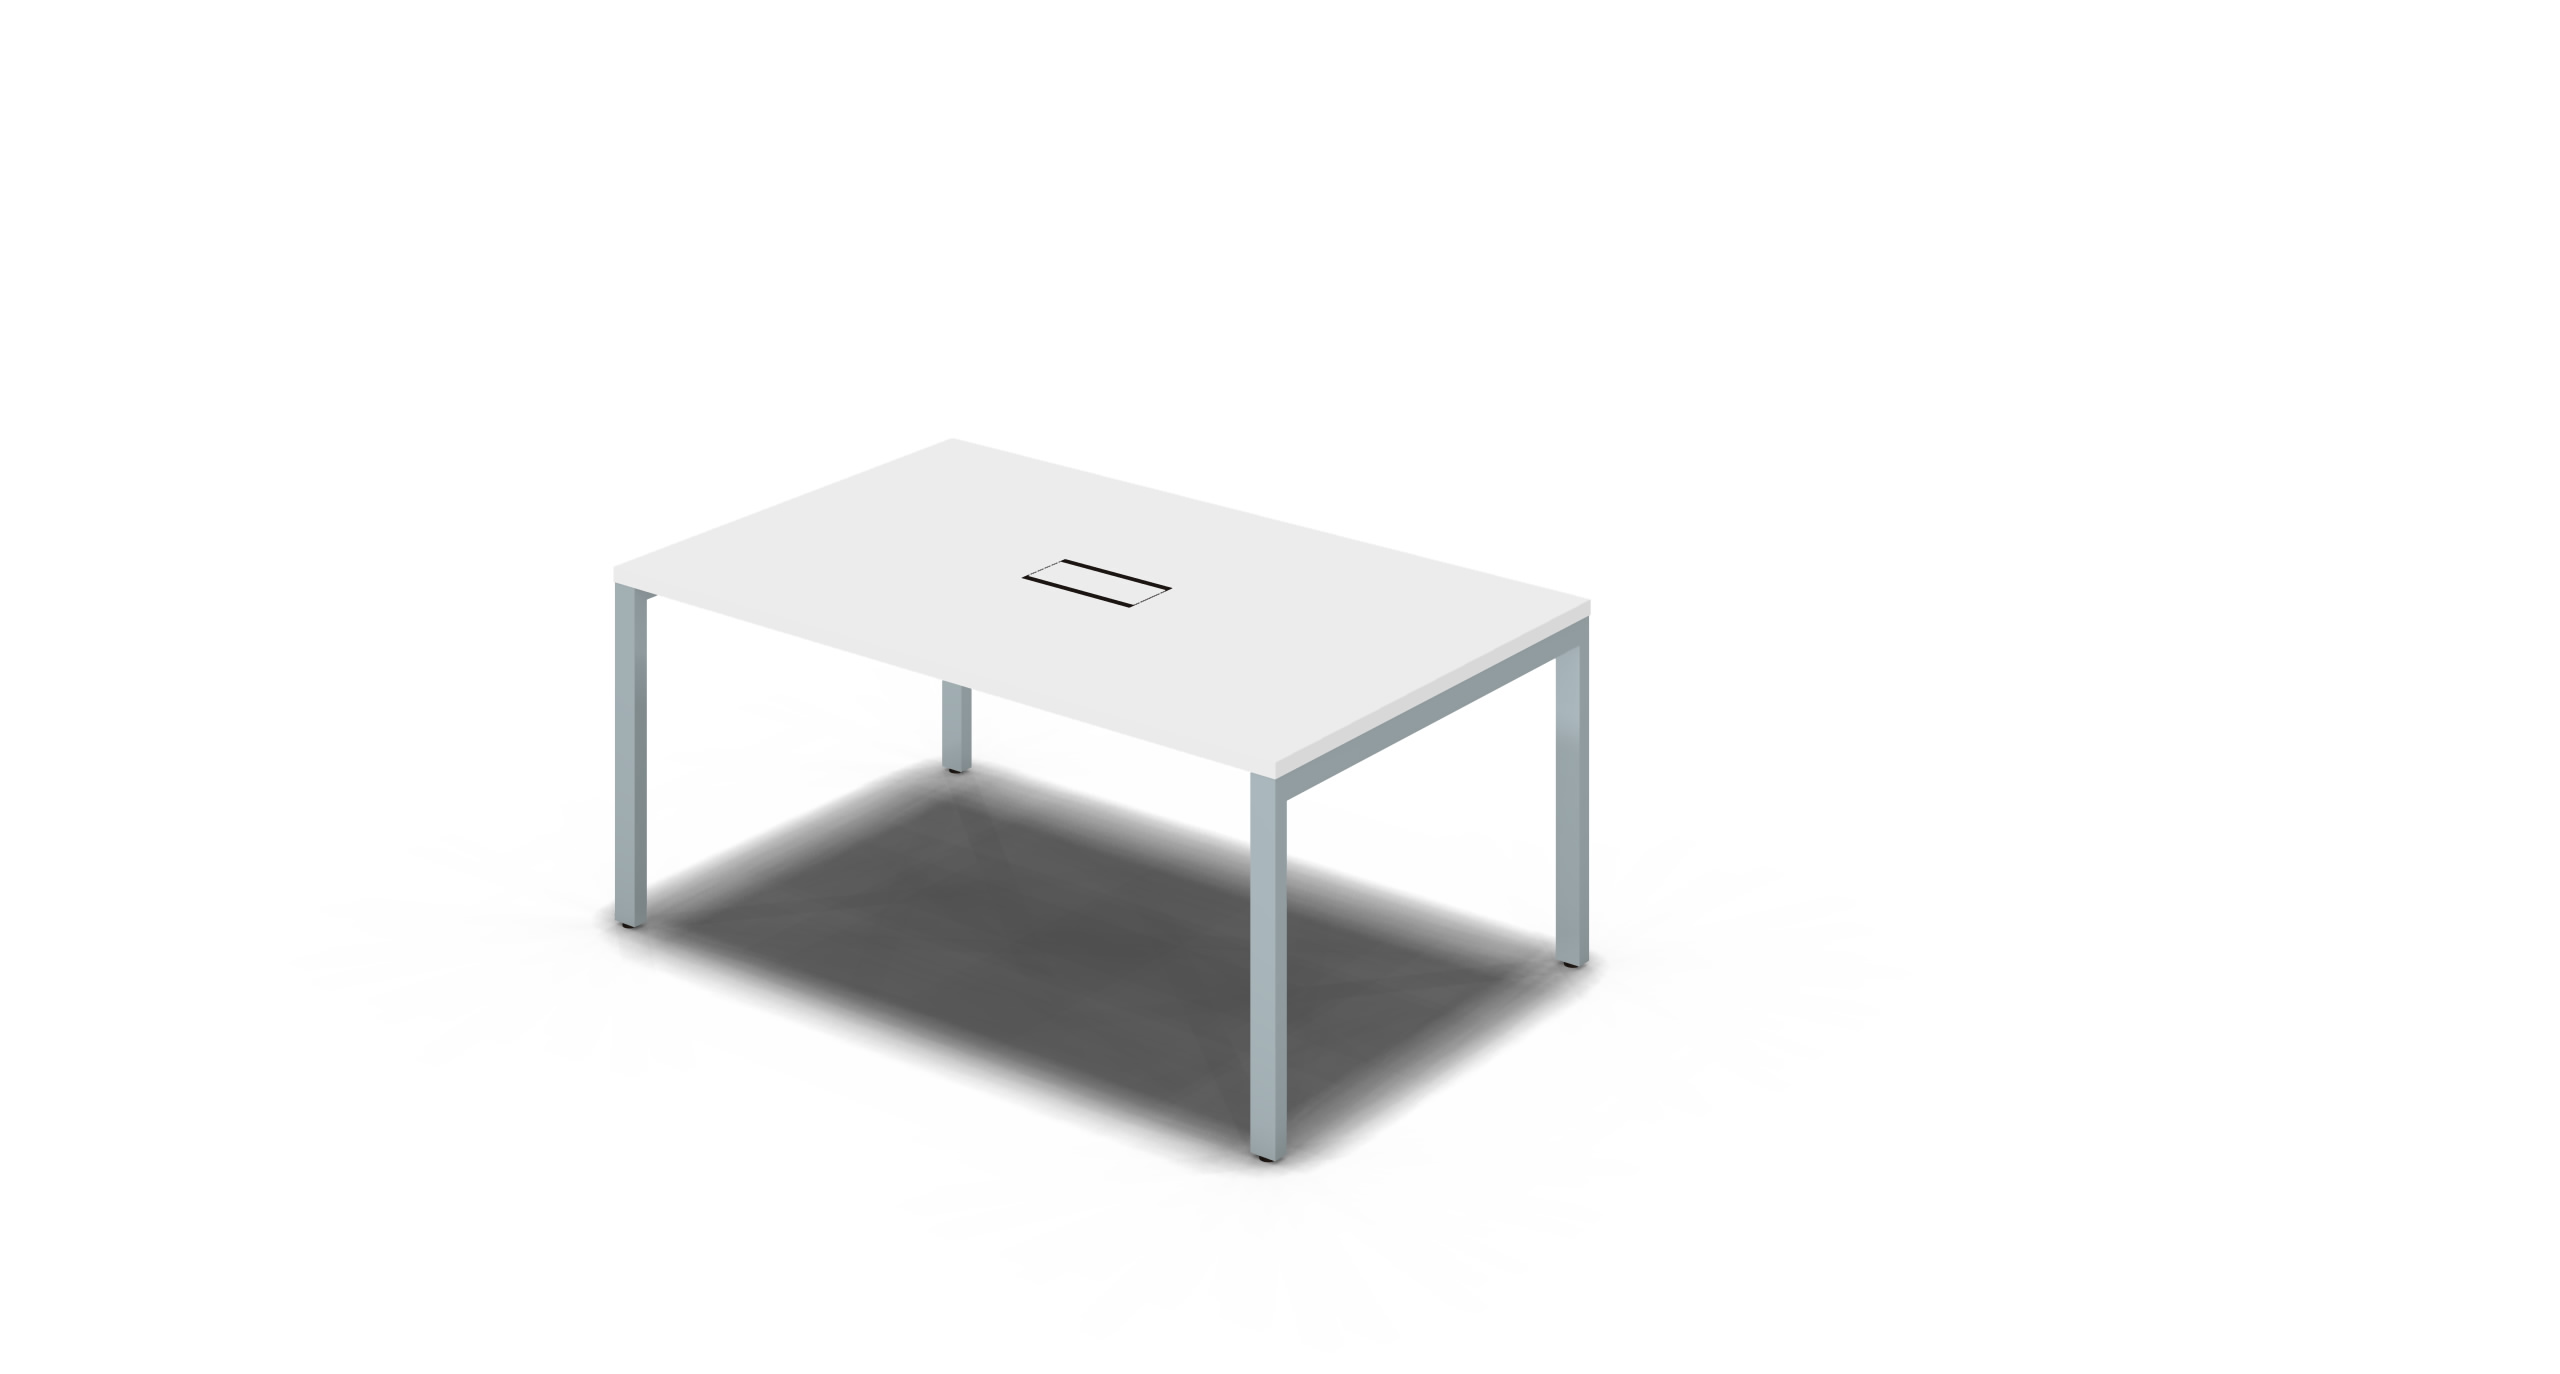 Table_Square_1500x900_Silver_White_withOption